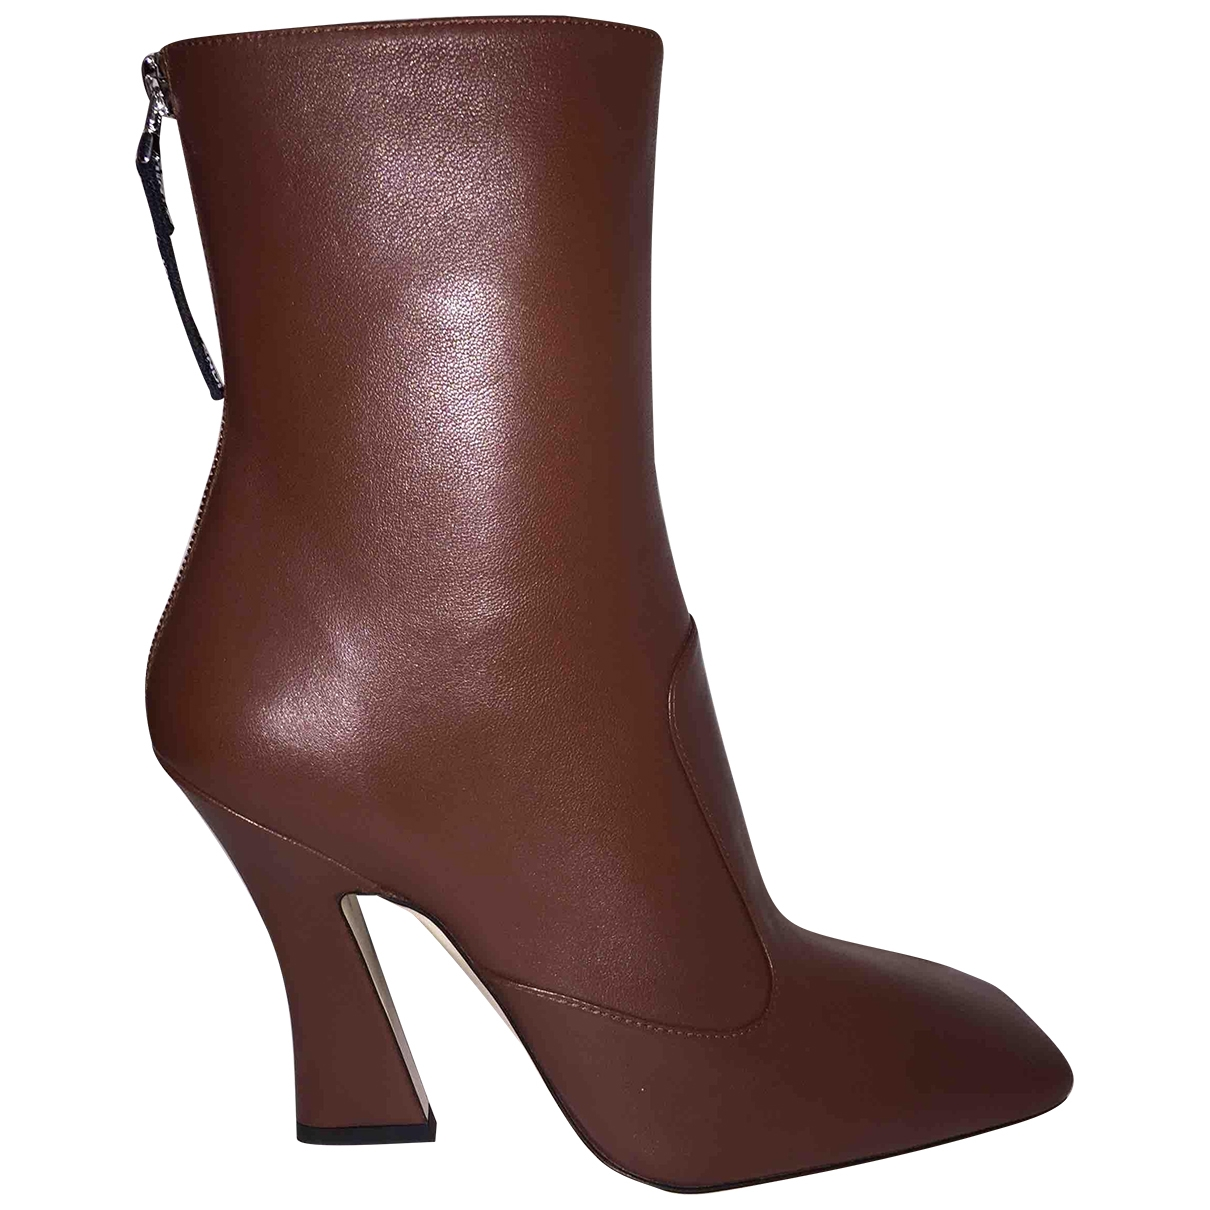 Fendi \N Brown Leather Boots for Women 38 EU